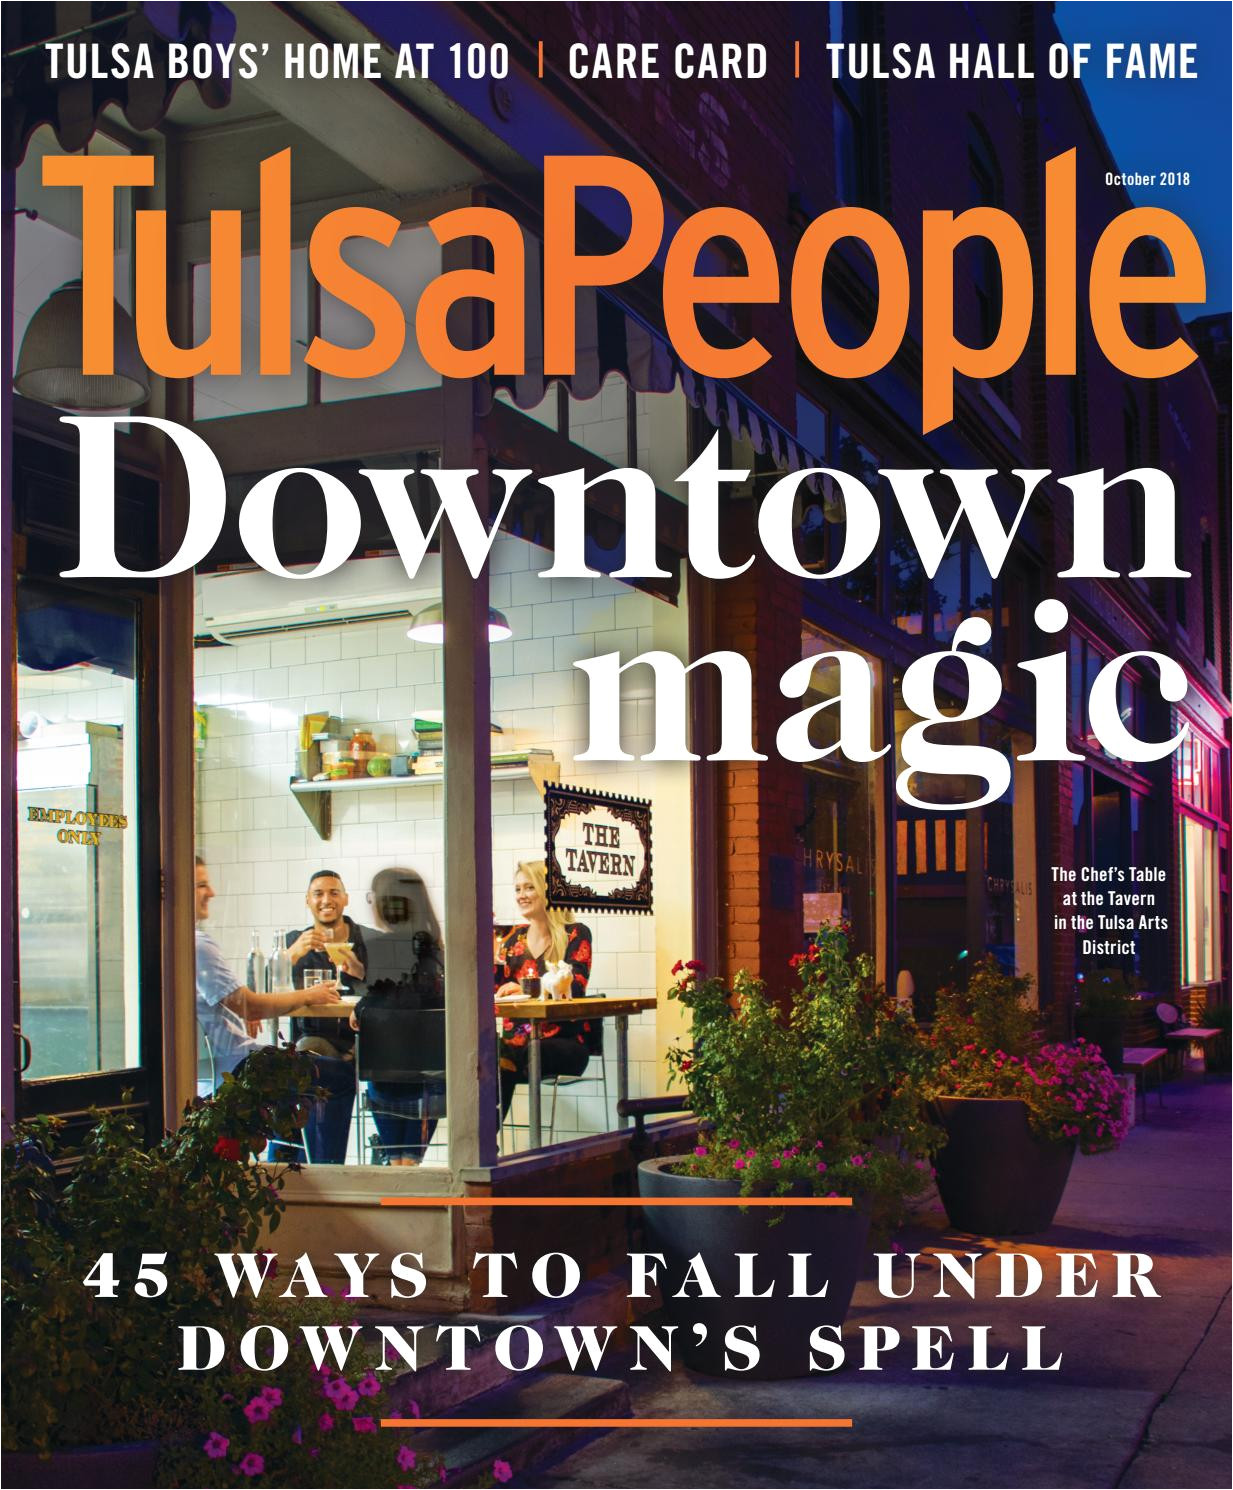 Tulsa Parade Of Homes 2019 Tulsapeople October 2018 by Tulsapeople issuu